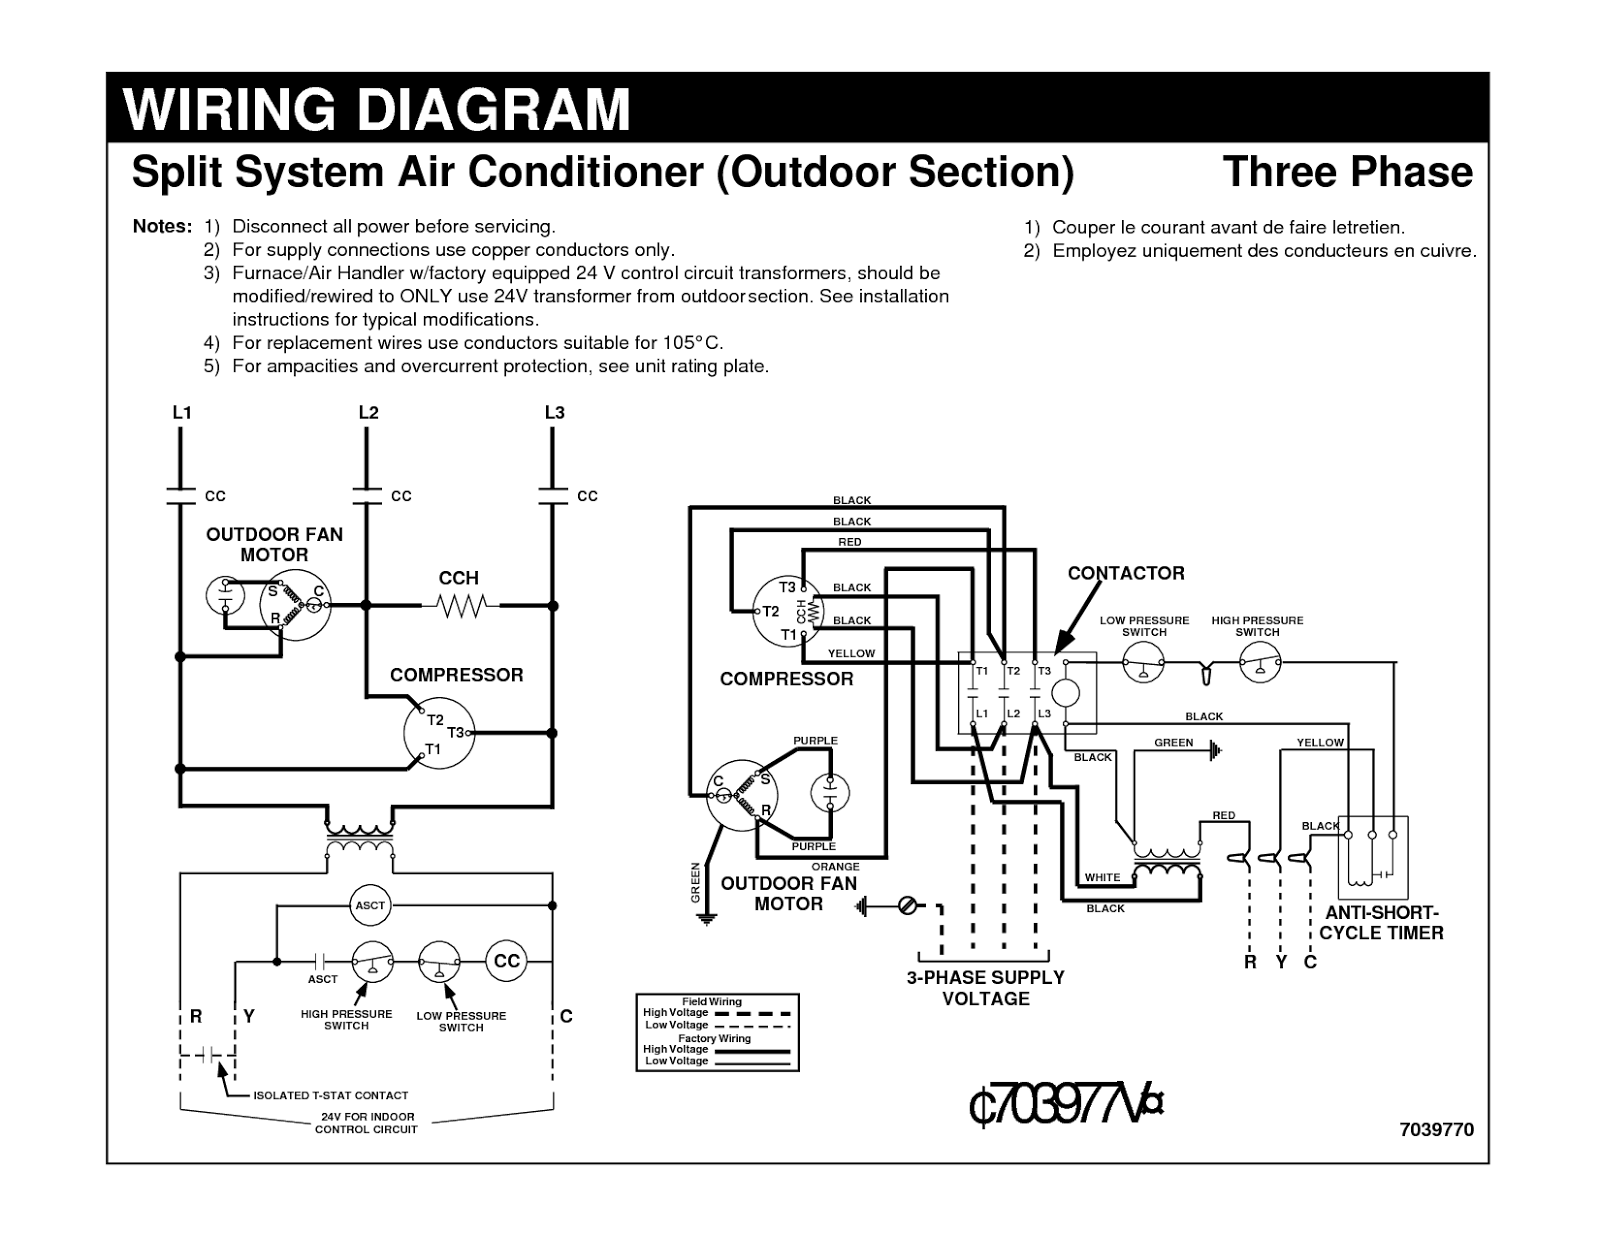 wiring+diagram+in+the+user+manual electrical wiring diagrams for air conditioning systems part one electrical wiring diagrams at n-0.co